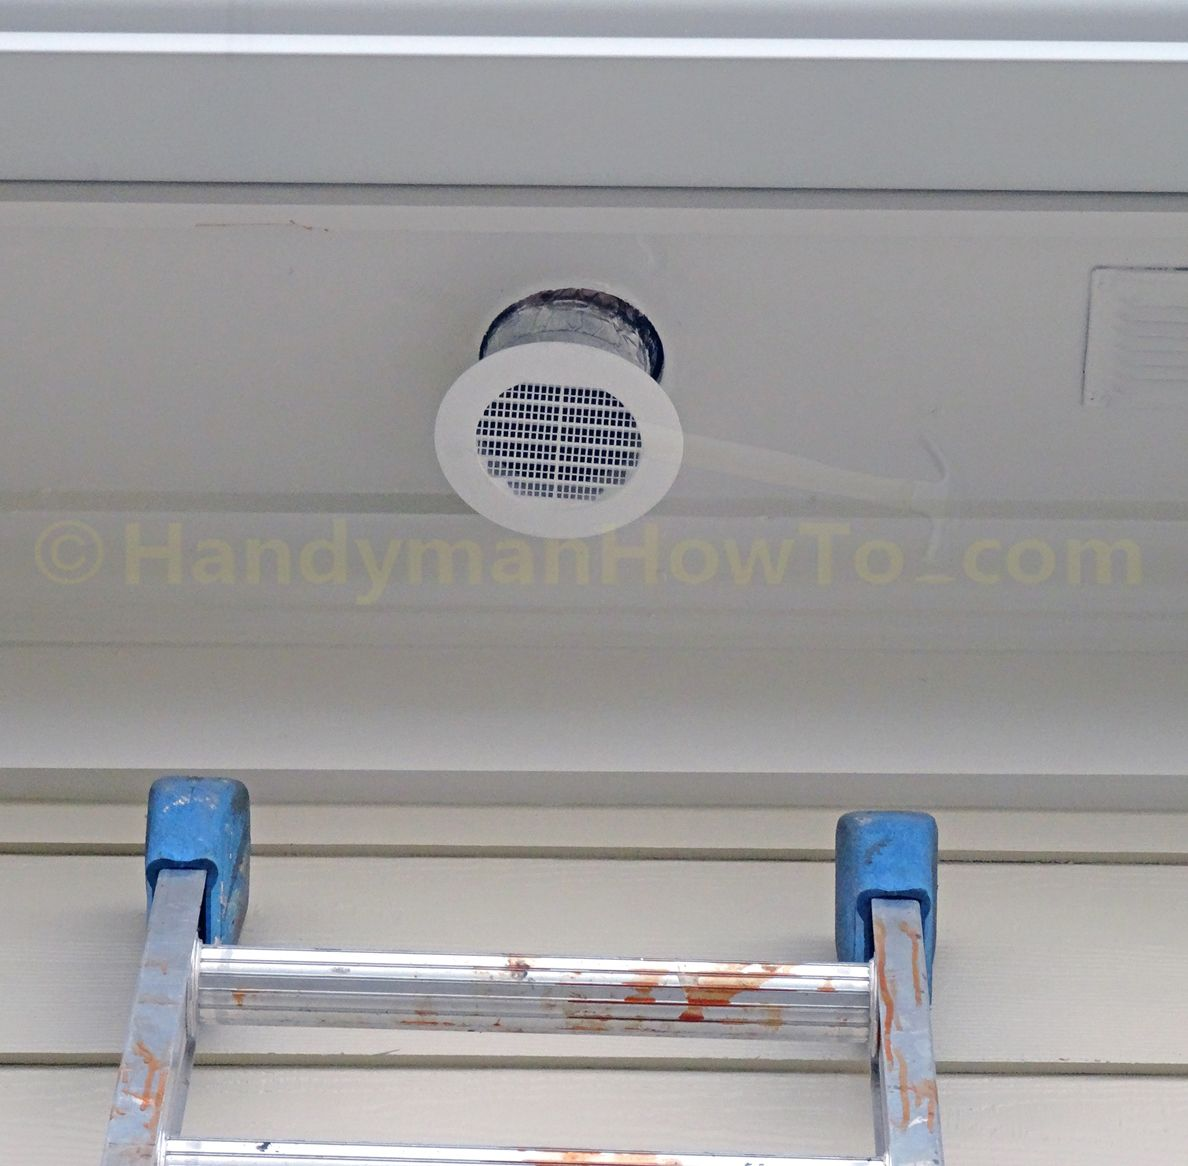 How To Install A Soffit Vent And Ductwork For A Bathroom Vent Fan Bathroom Vent Fan Bathroom Vent Bathroom Fan